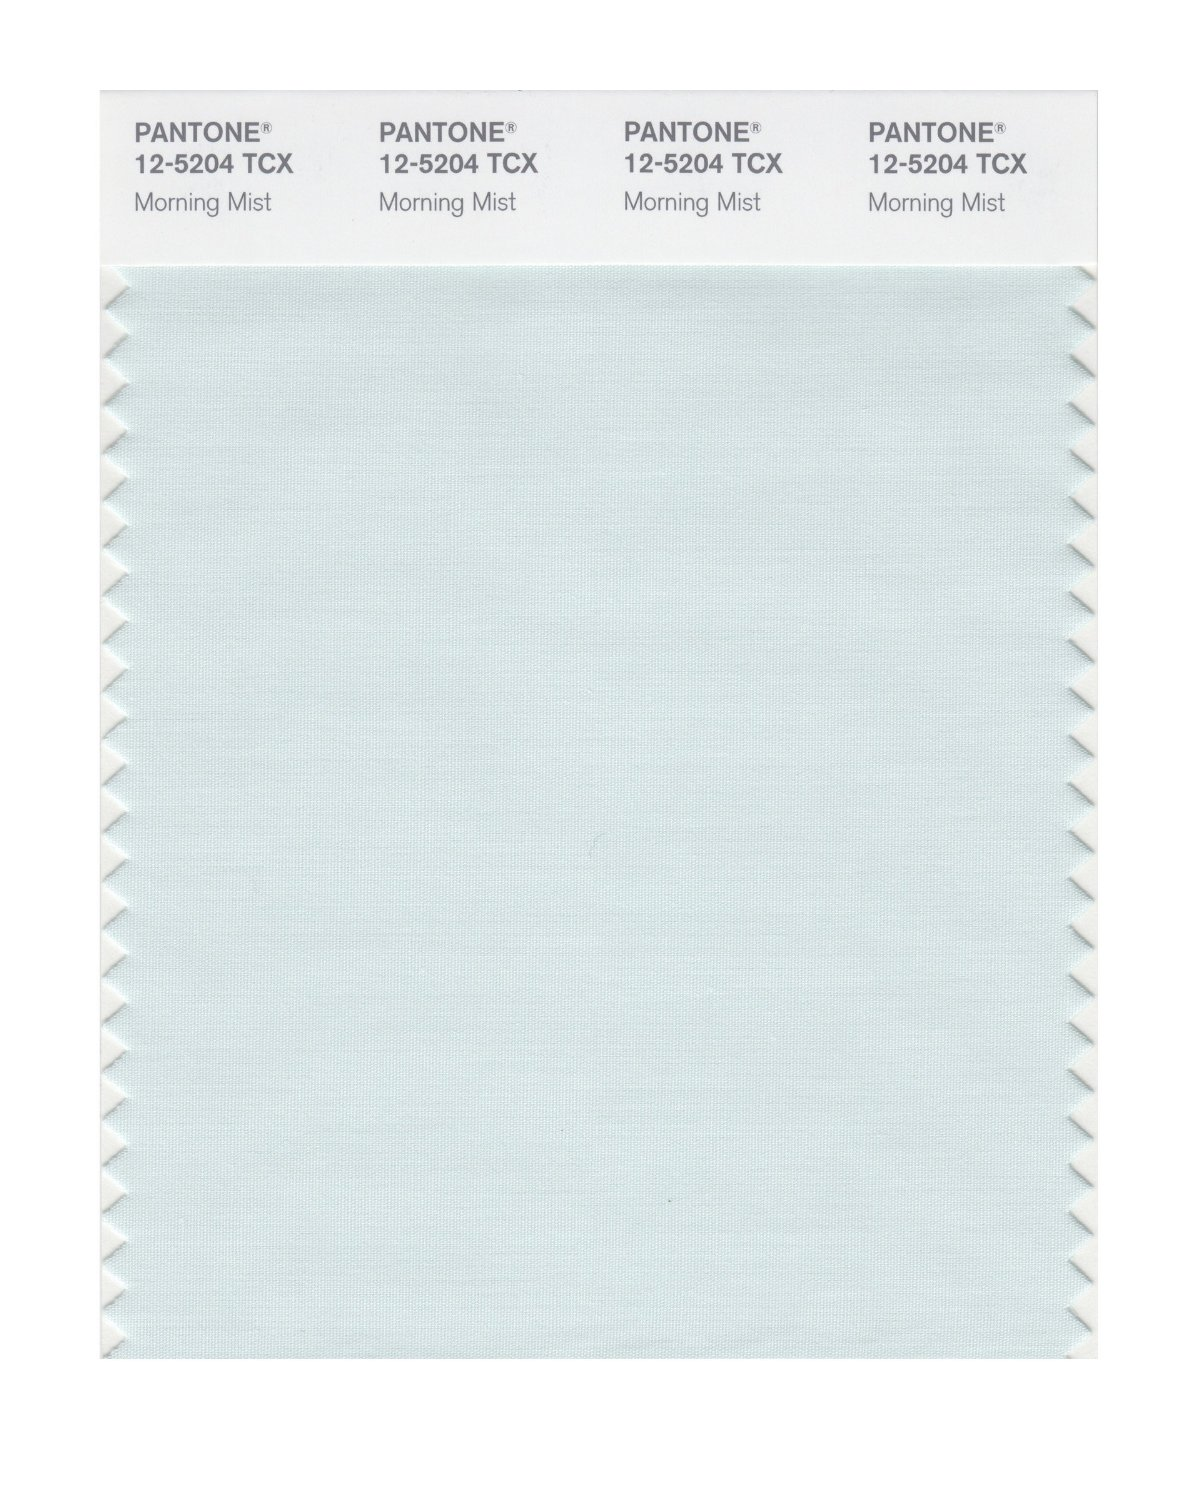 Pantone Smart Swatch 12-5204 Morning Mist